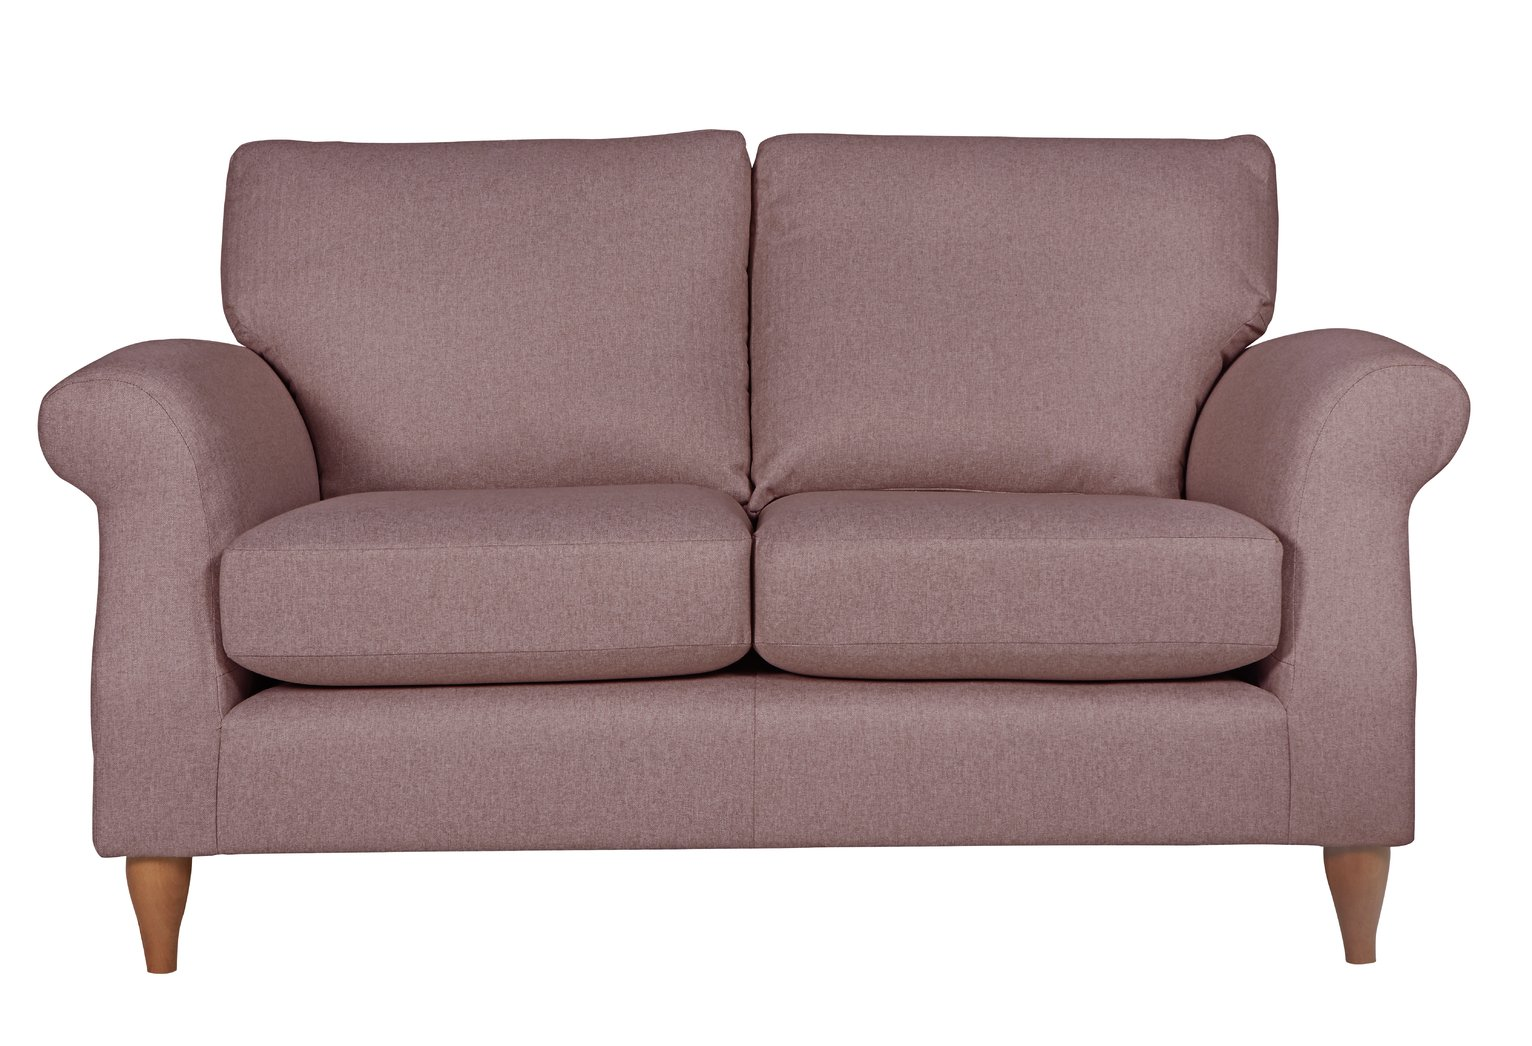 Argos Home Bude 2 Seater Fabric Sofa - Pink